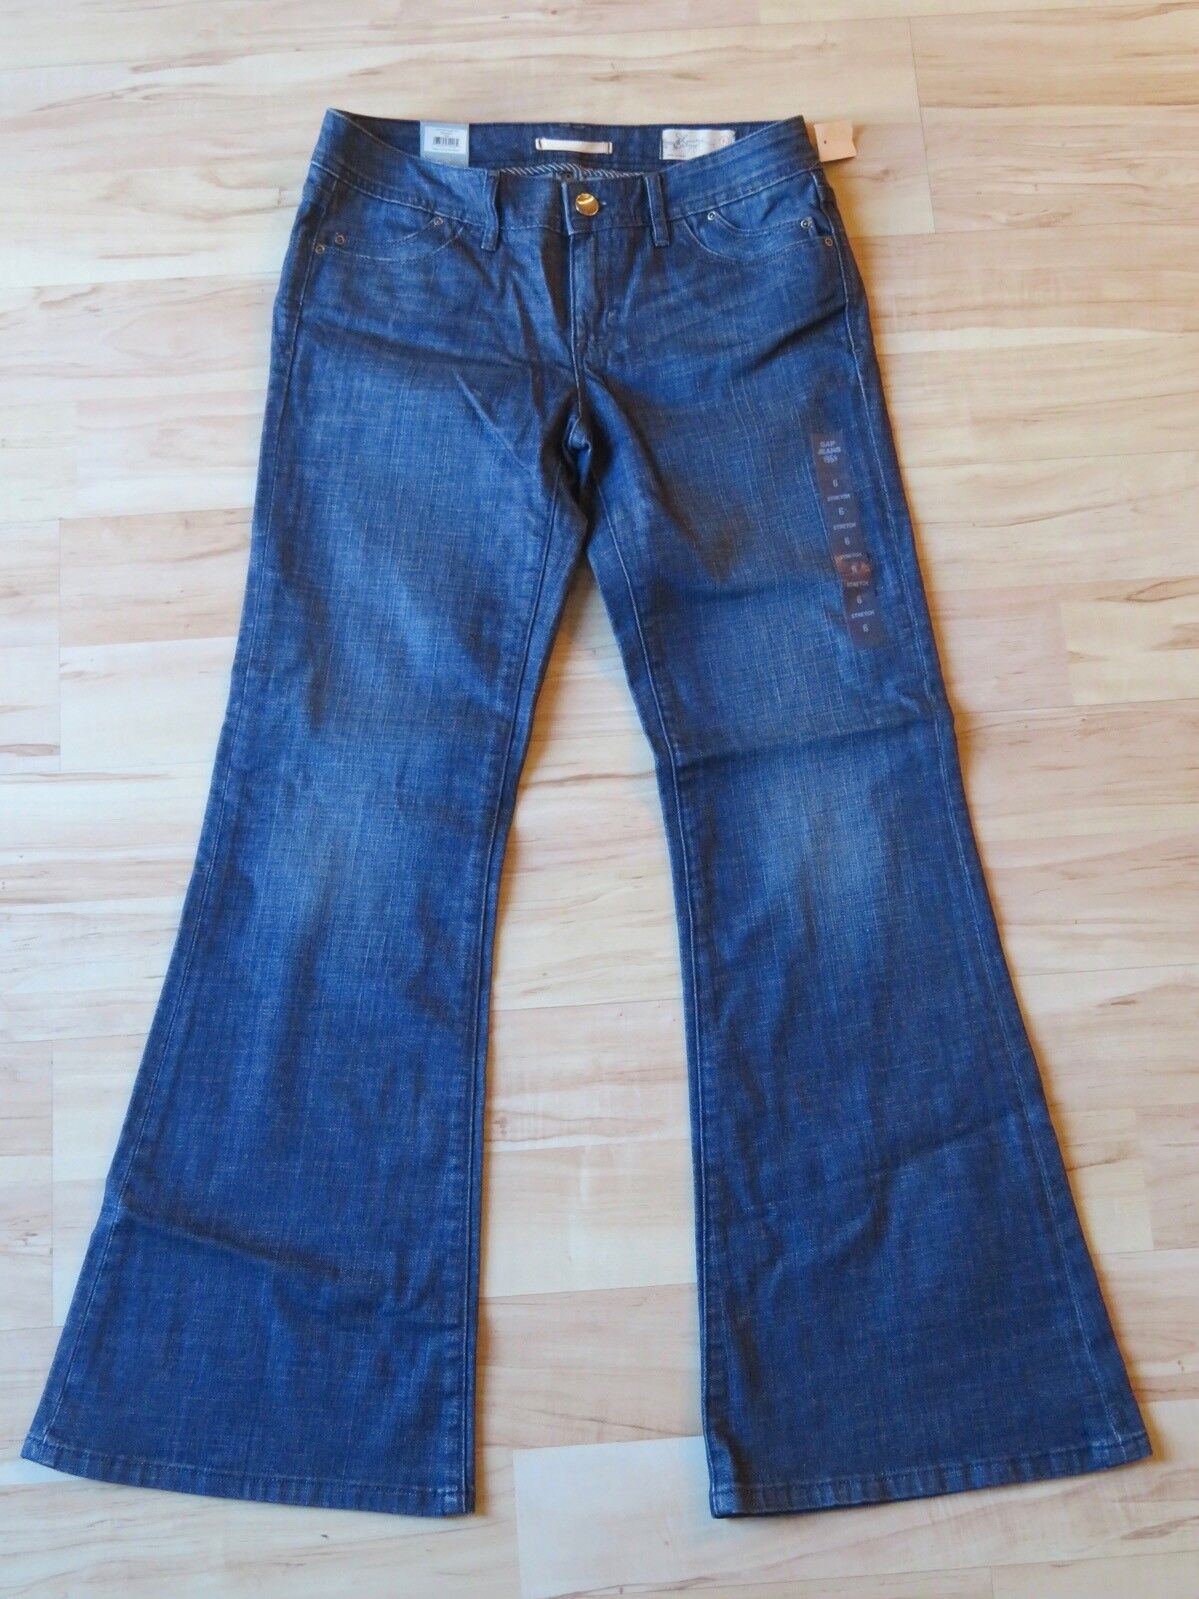 New Women's Gap Stretch Limited Edition Denim Pants bluee Jeans Flared Leg Size 6